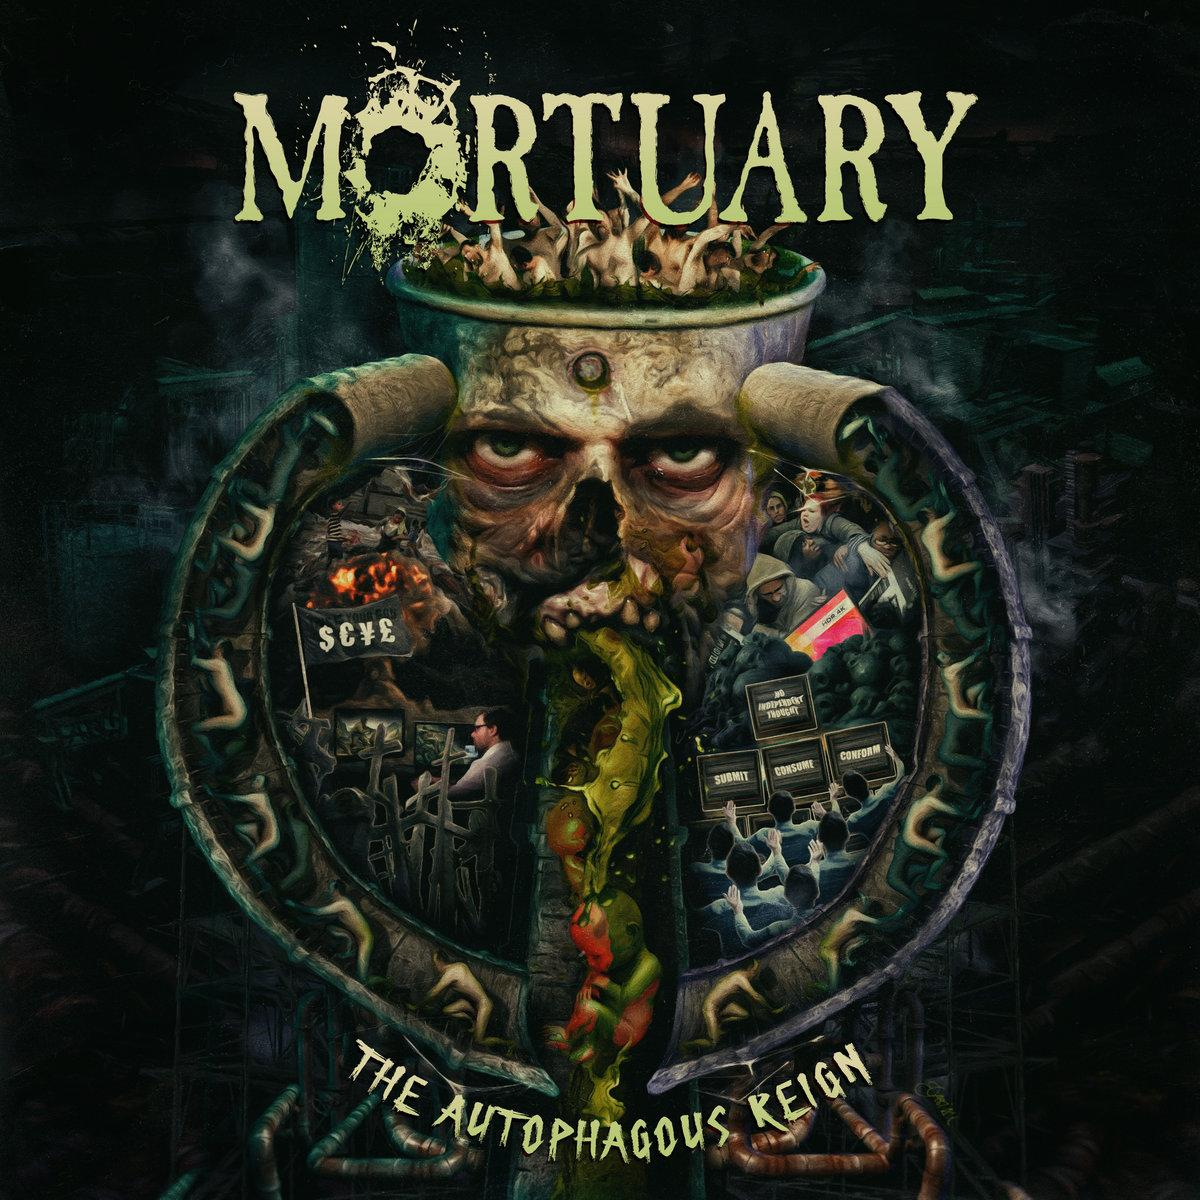 Chronique d'album : MORTUARY (Thrash Death) - The Autophagous Reign (2019)